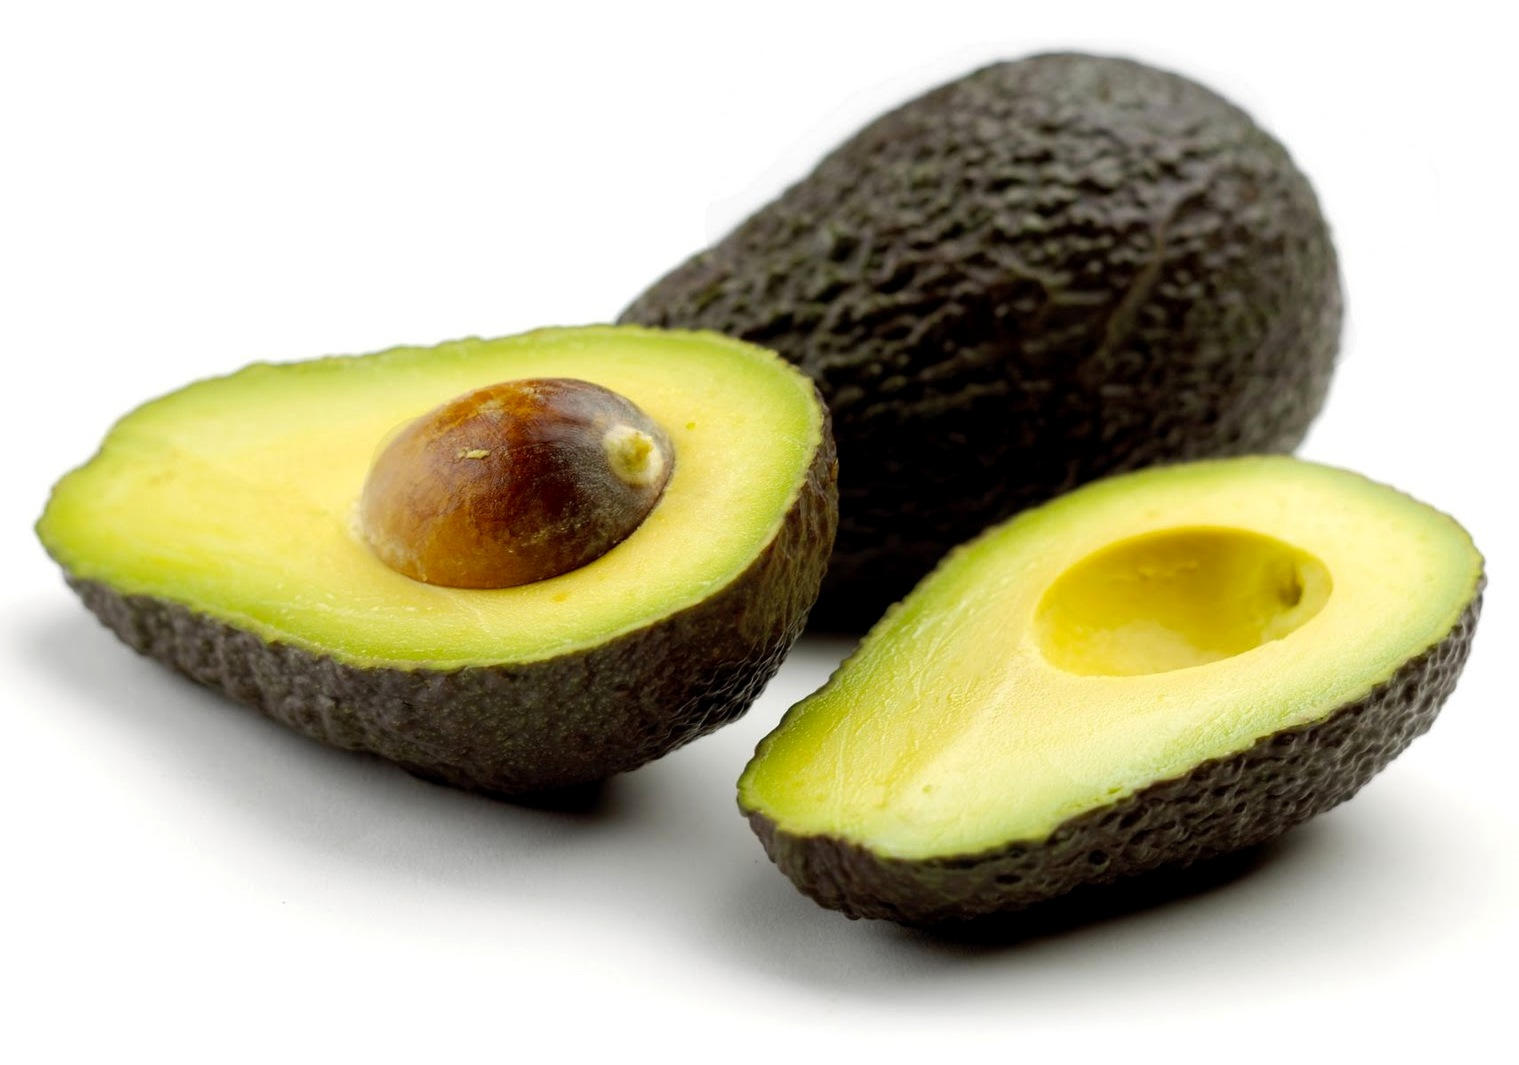 Avocado…the Fattest Fruit of All